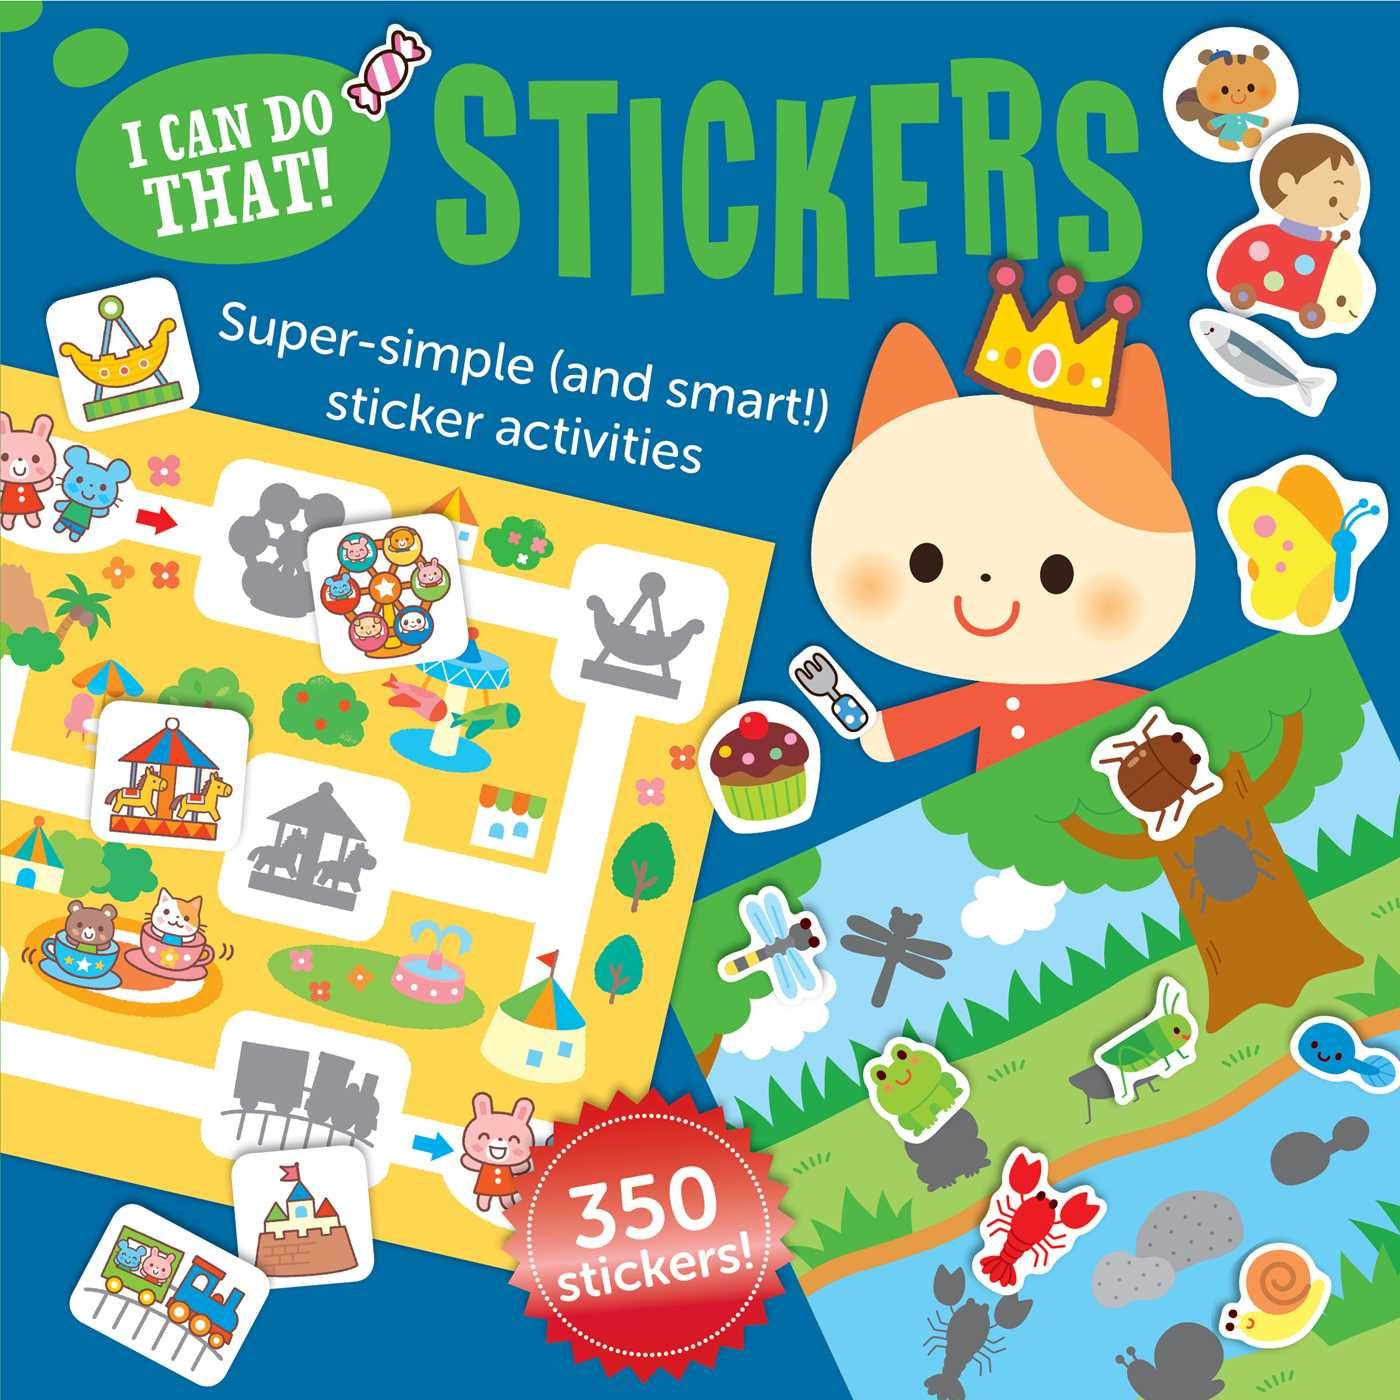 I Can Do That: Stickers: Super Simple (and Smart!) Sticker Activities (I Can Do It!) ePub fb2 book